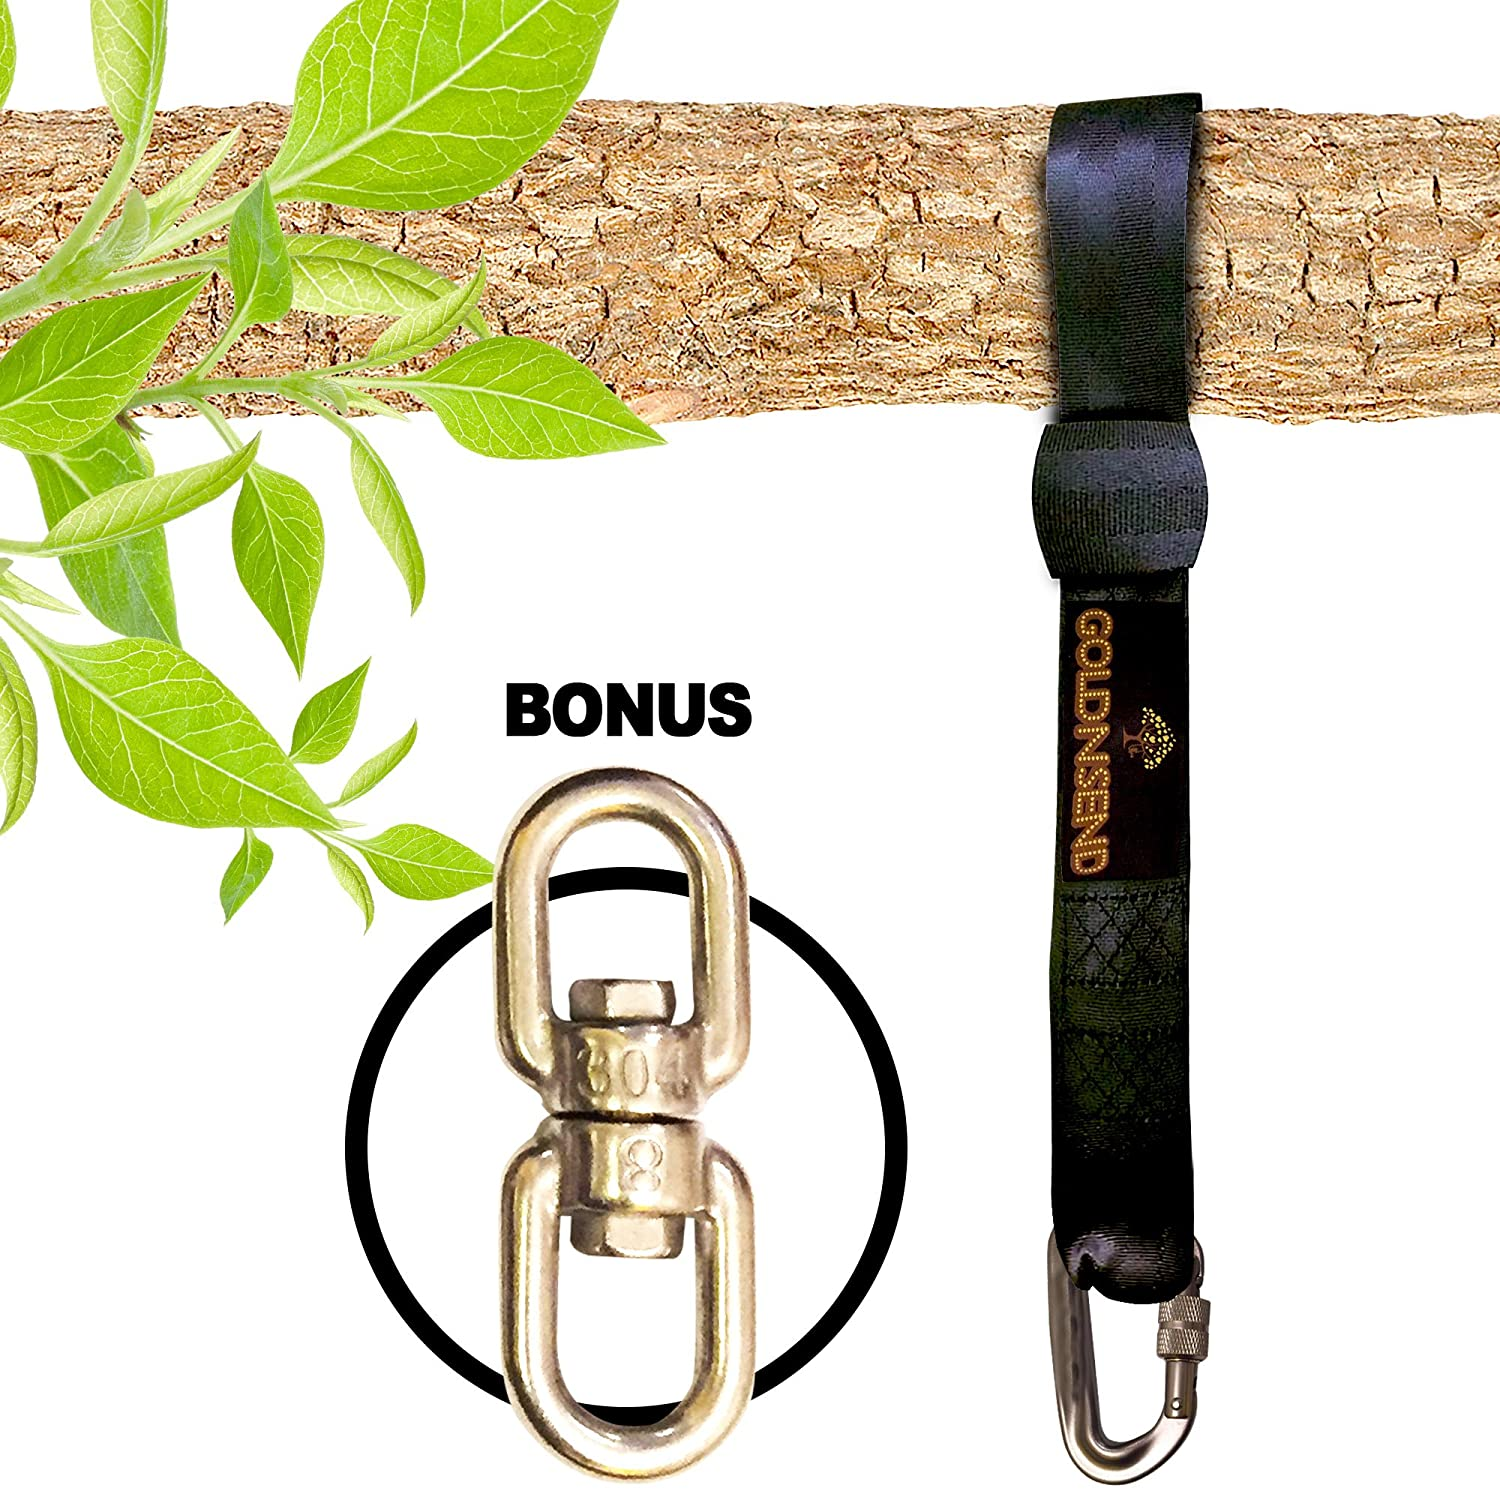 10 Ft Tree Swing Straps Hanging Kit for Outdoor Swing with FREE SWIVEL HOOK - New Extra Long10 Ft Strap Holds 2800 Lbs, Fast & Easy Way to Hang Any Swing Set Goldnsend - Click Image to Close